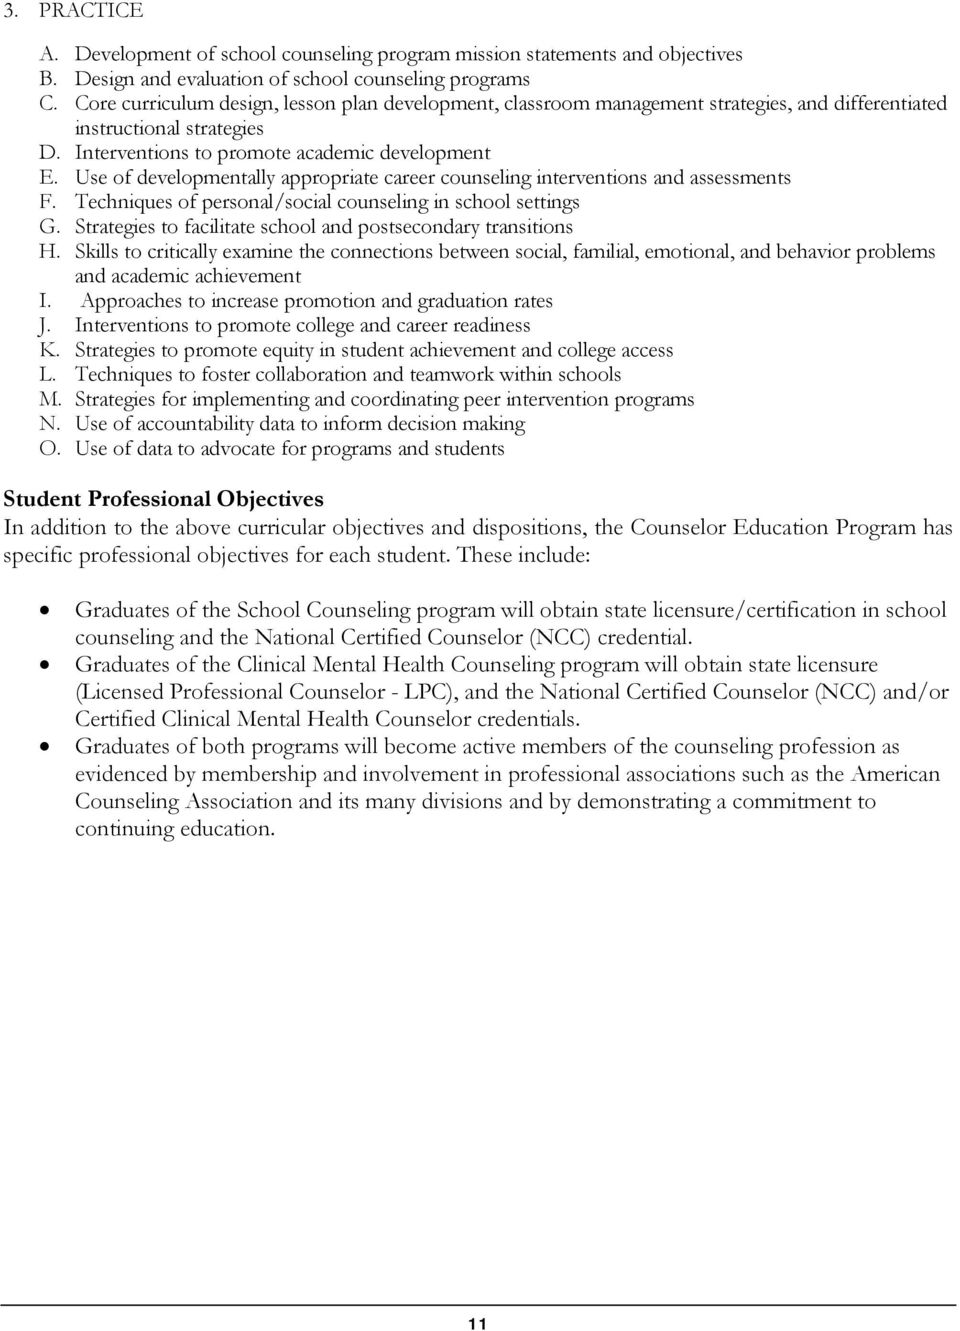 Use of developmentally appropriate career counseling interventions and assessments F. Techniques of personal/social counseling in school settings G.